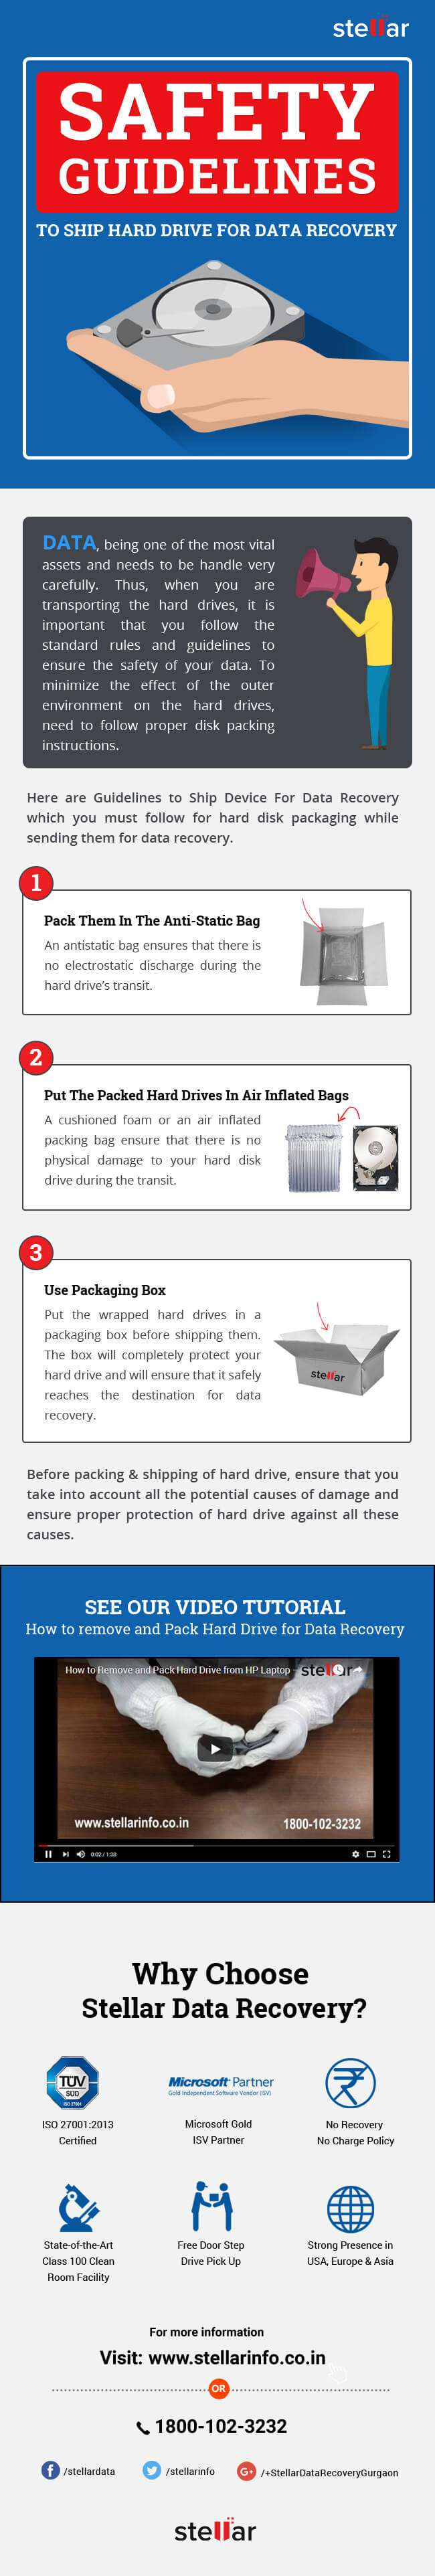 Hard drive packing & safety tips